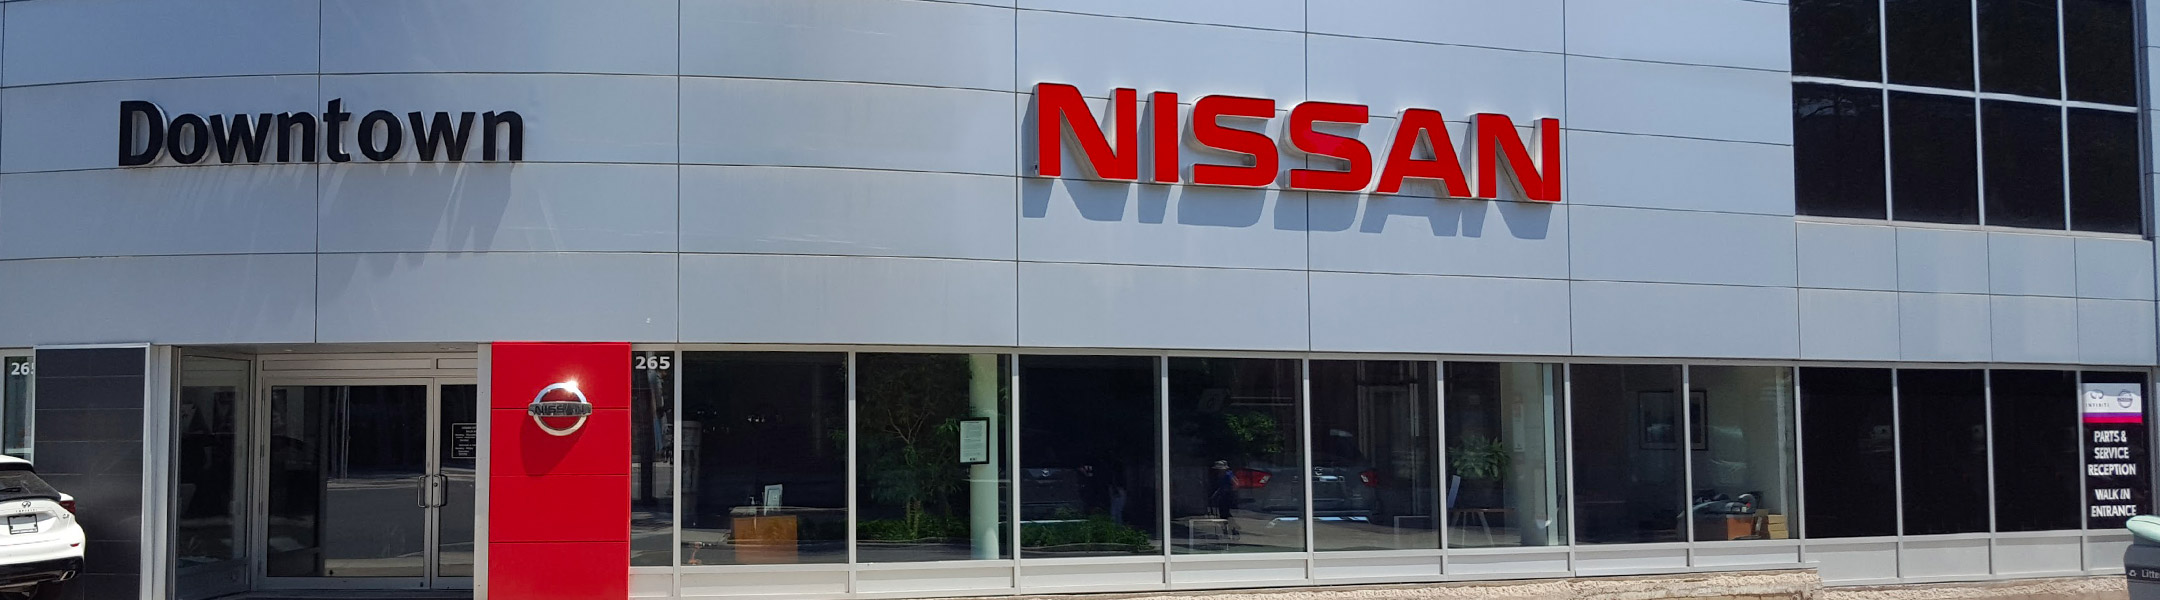 About Nissan Downtown